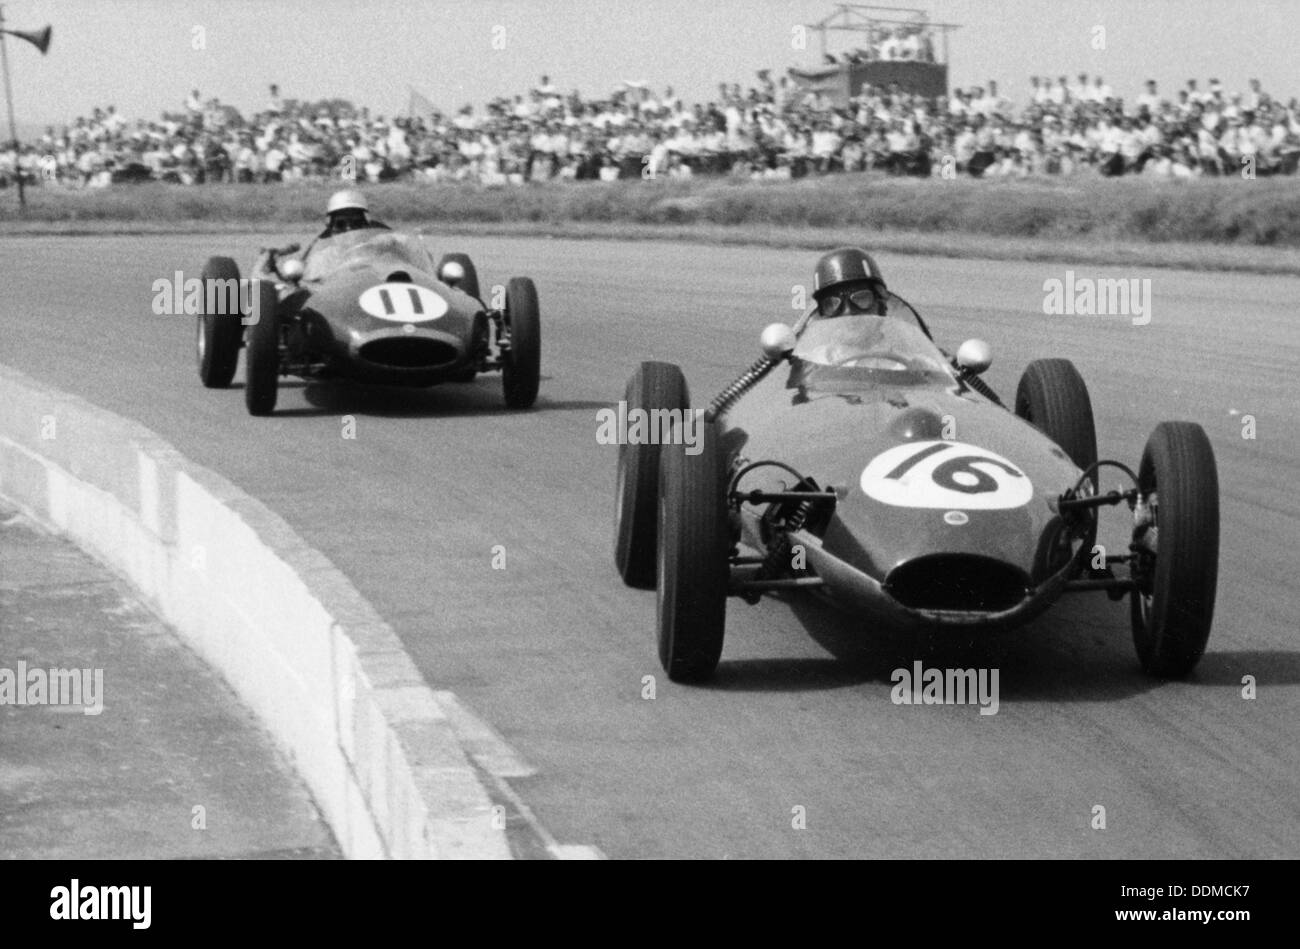 Graham Hill and Jack Brabham racing in the XI British Grand Prix, Silverstone, July 1958. - Stock Image